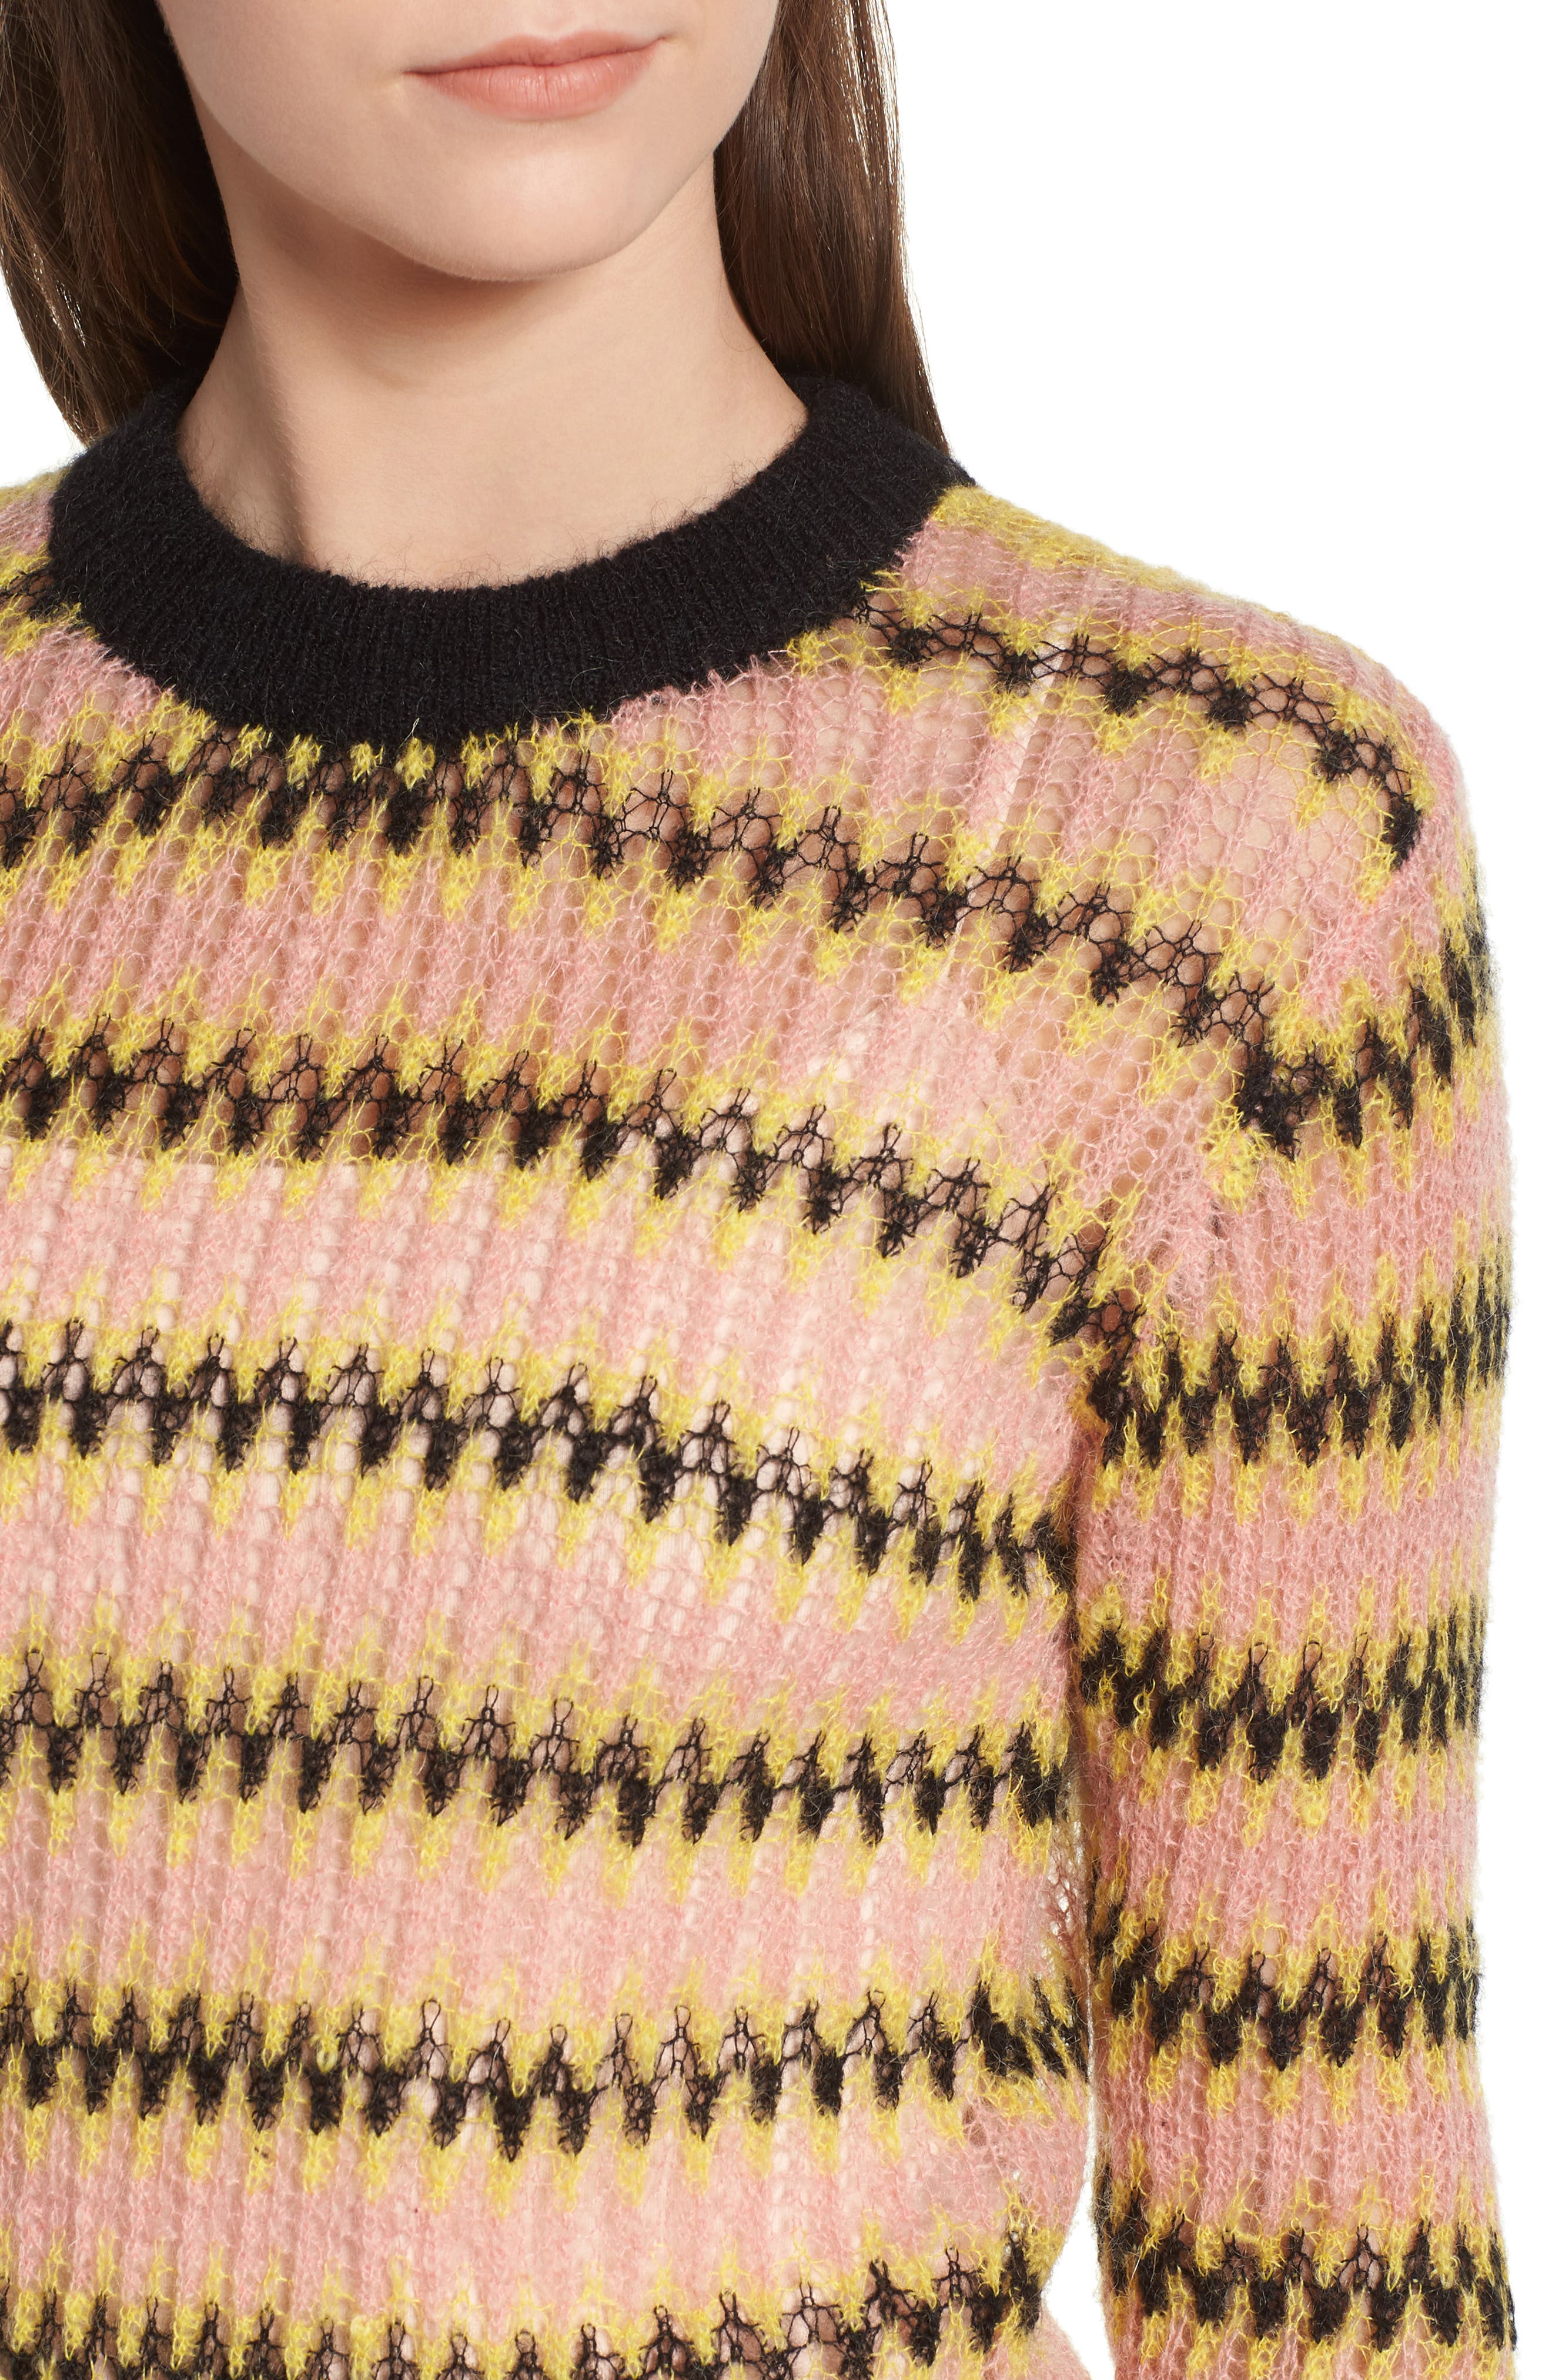 Zig Zag Wool Blend Sweater,                             Alternate thumbnail 4, color,                             700